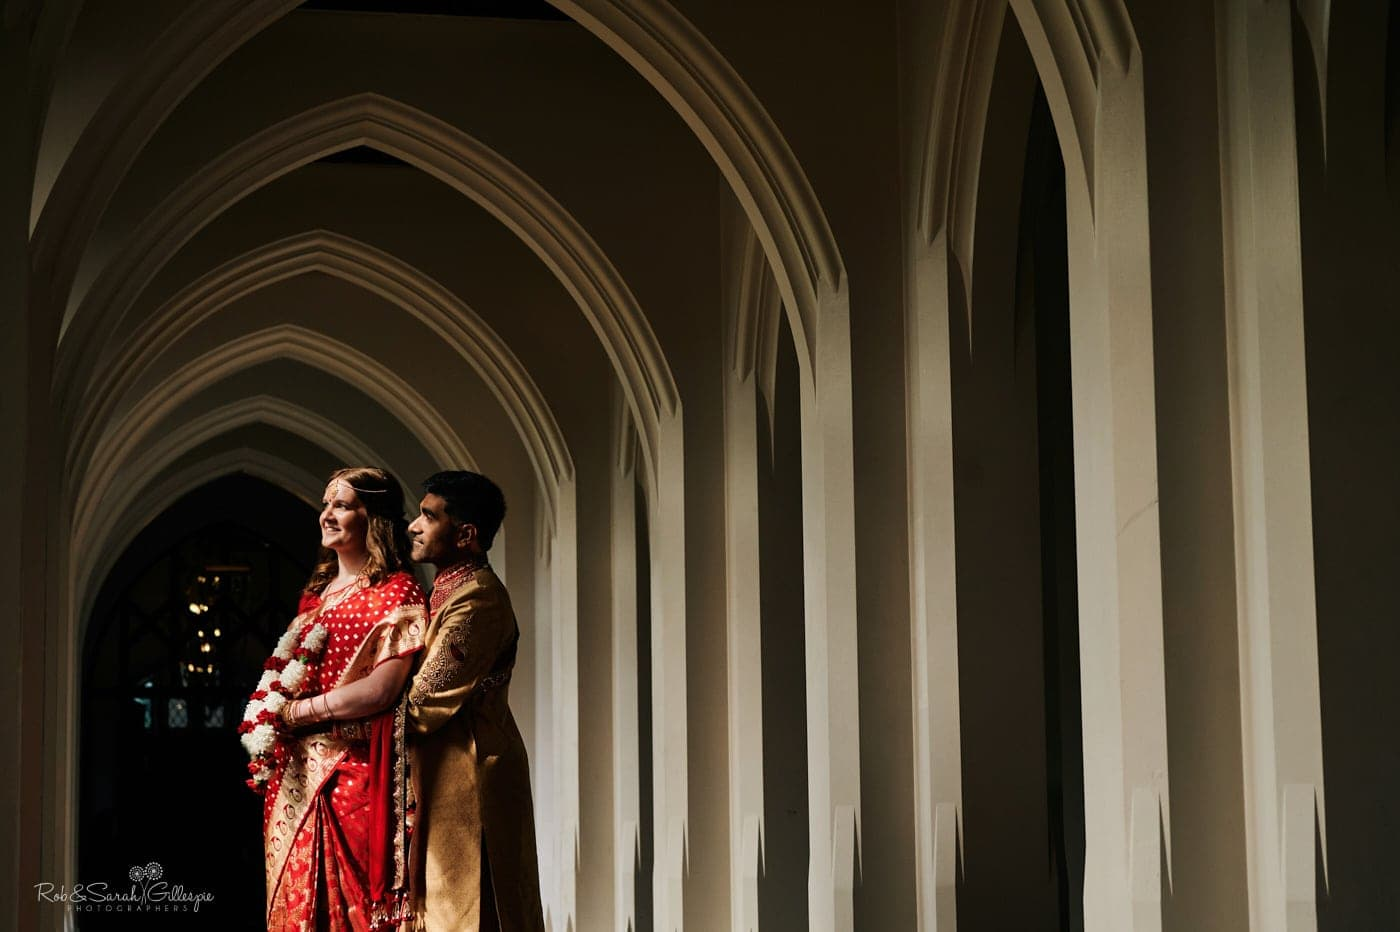 Bride and groom in arched cloisters with strong directional light